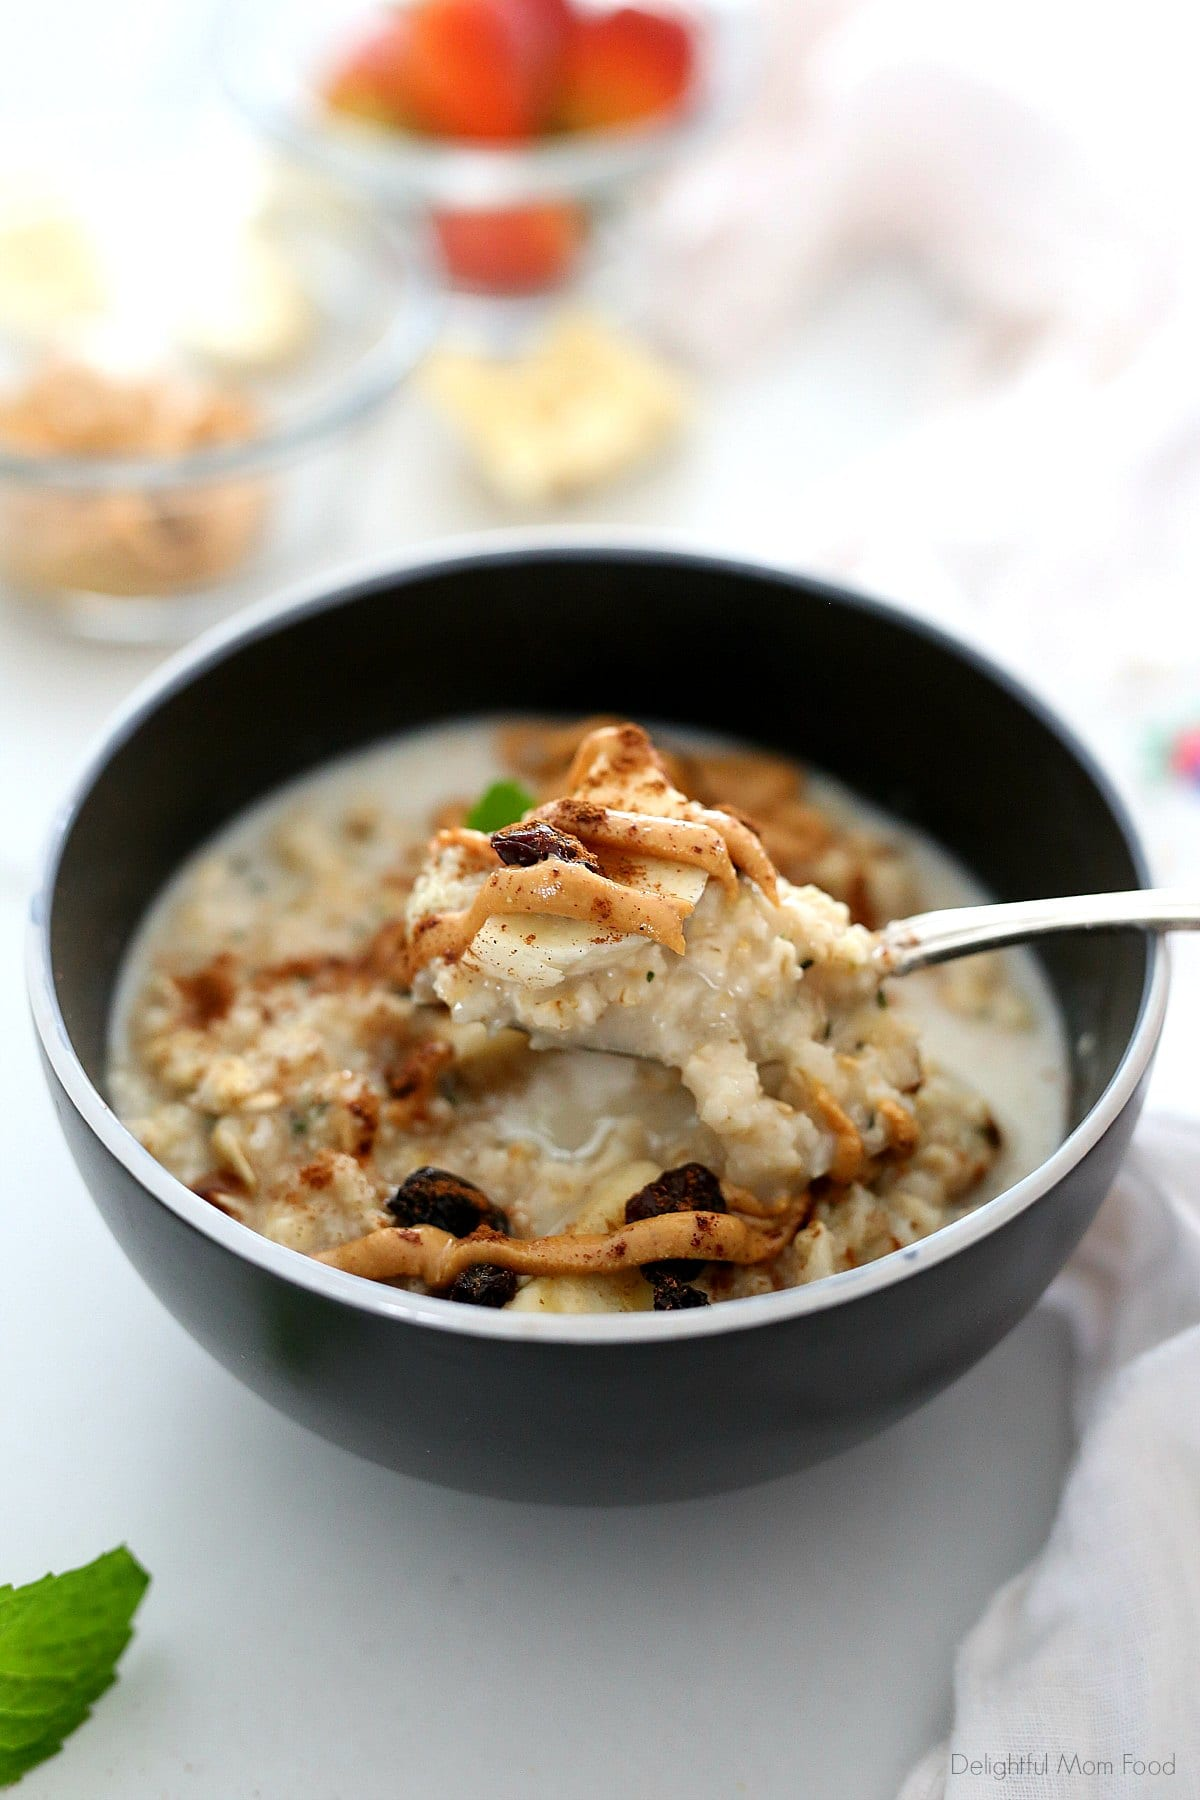 scooping a bowl of peanut butter oatmeal with a spoon